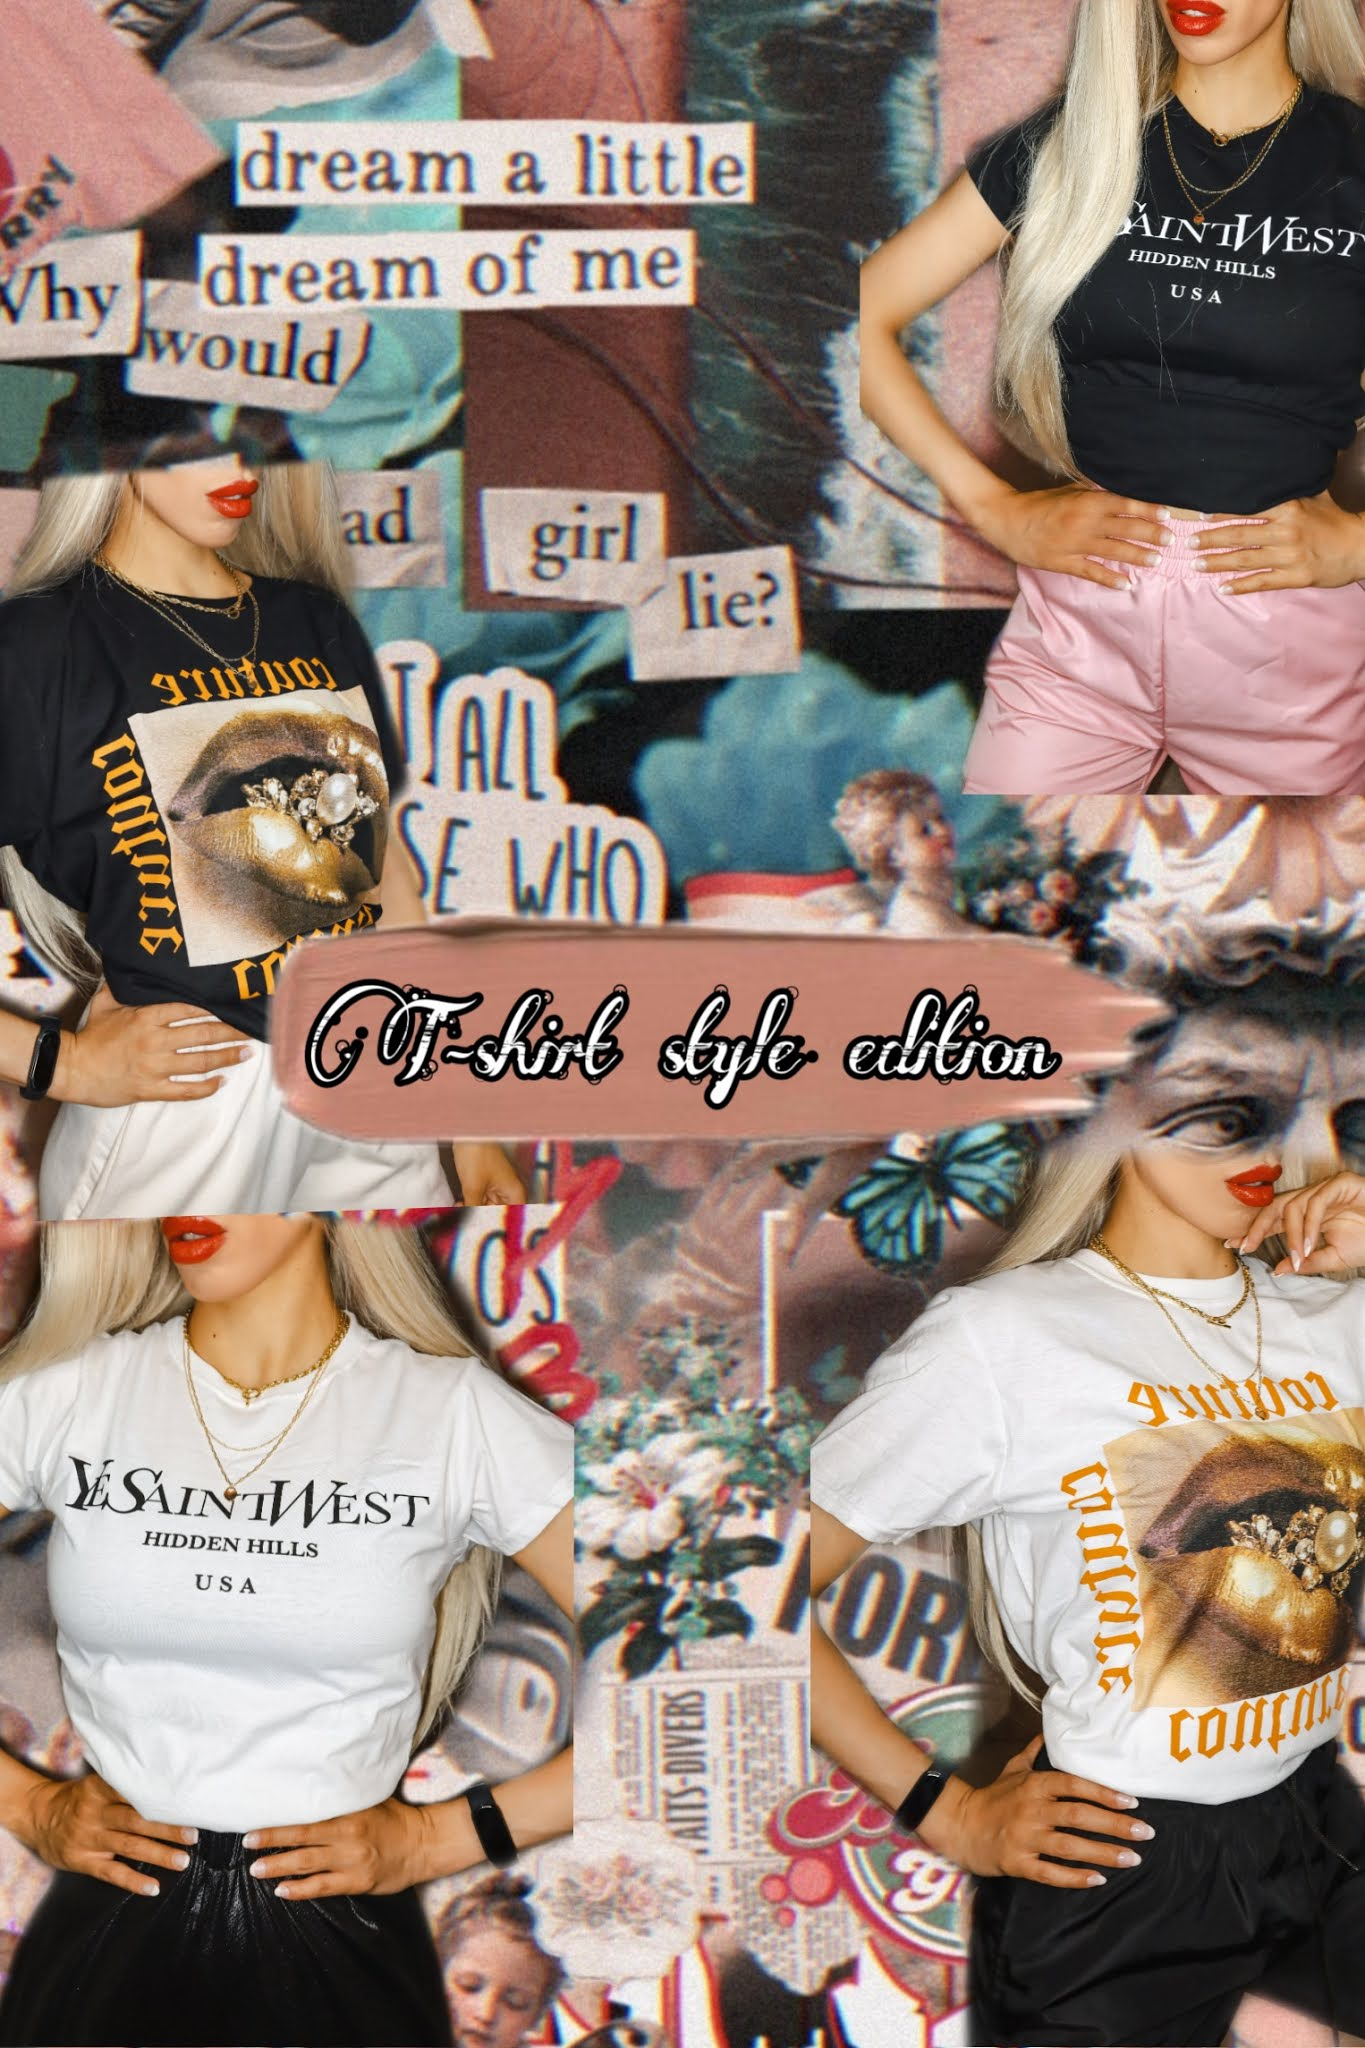 Unique t-shirt designs from Femme Luxe